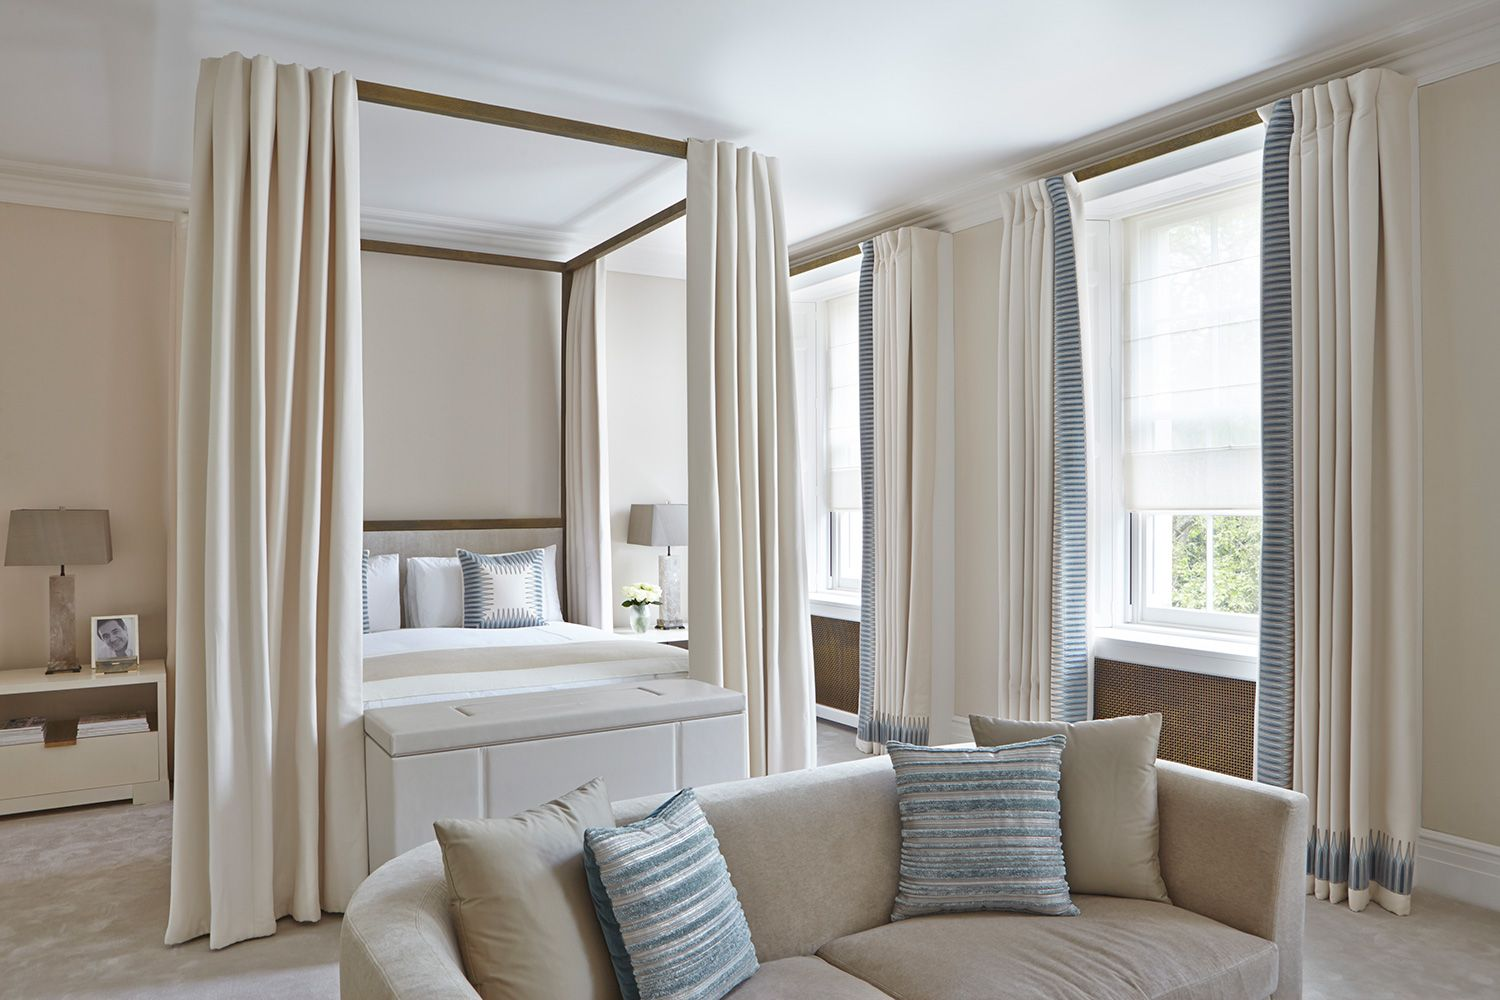 INTERIOR DESIGN ∙ LONDON HOUSES ∙ BELGRAVIA - Todhunter EarleTodhunter Earleblue and cream